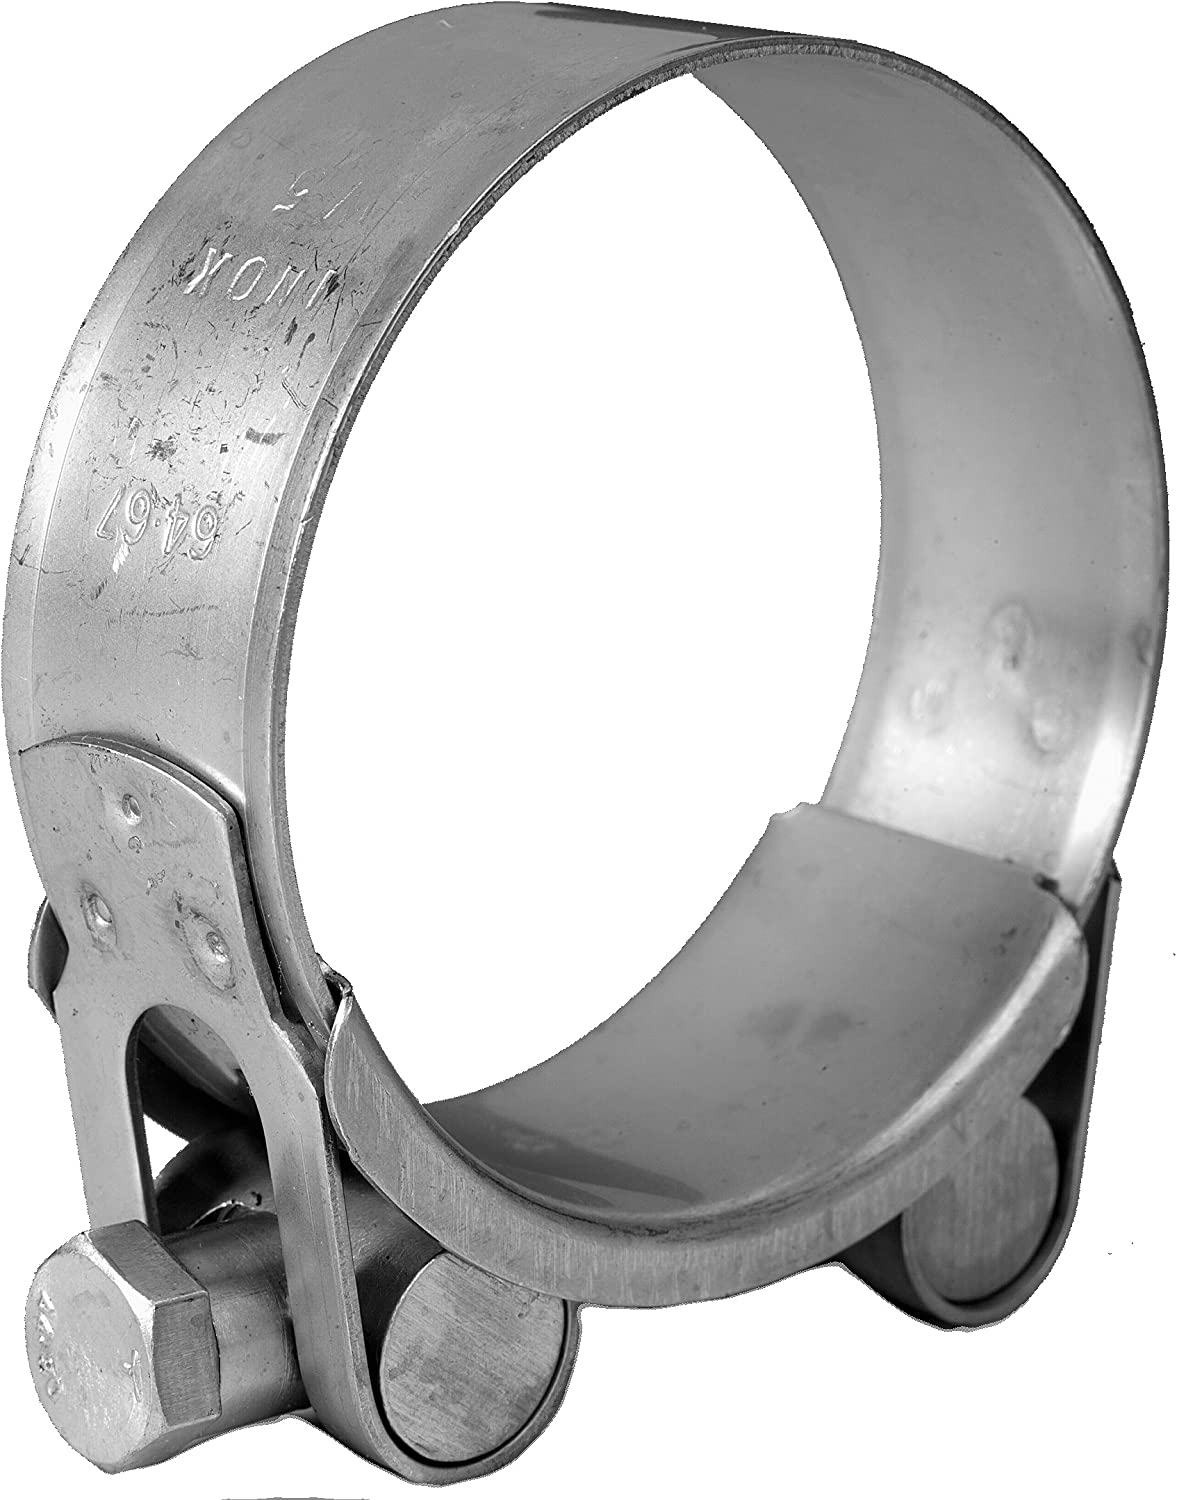 Jubilee JSC047MSP Super Clamp M//S 44-47mm Pack of 5